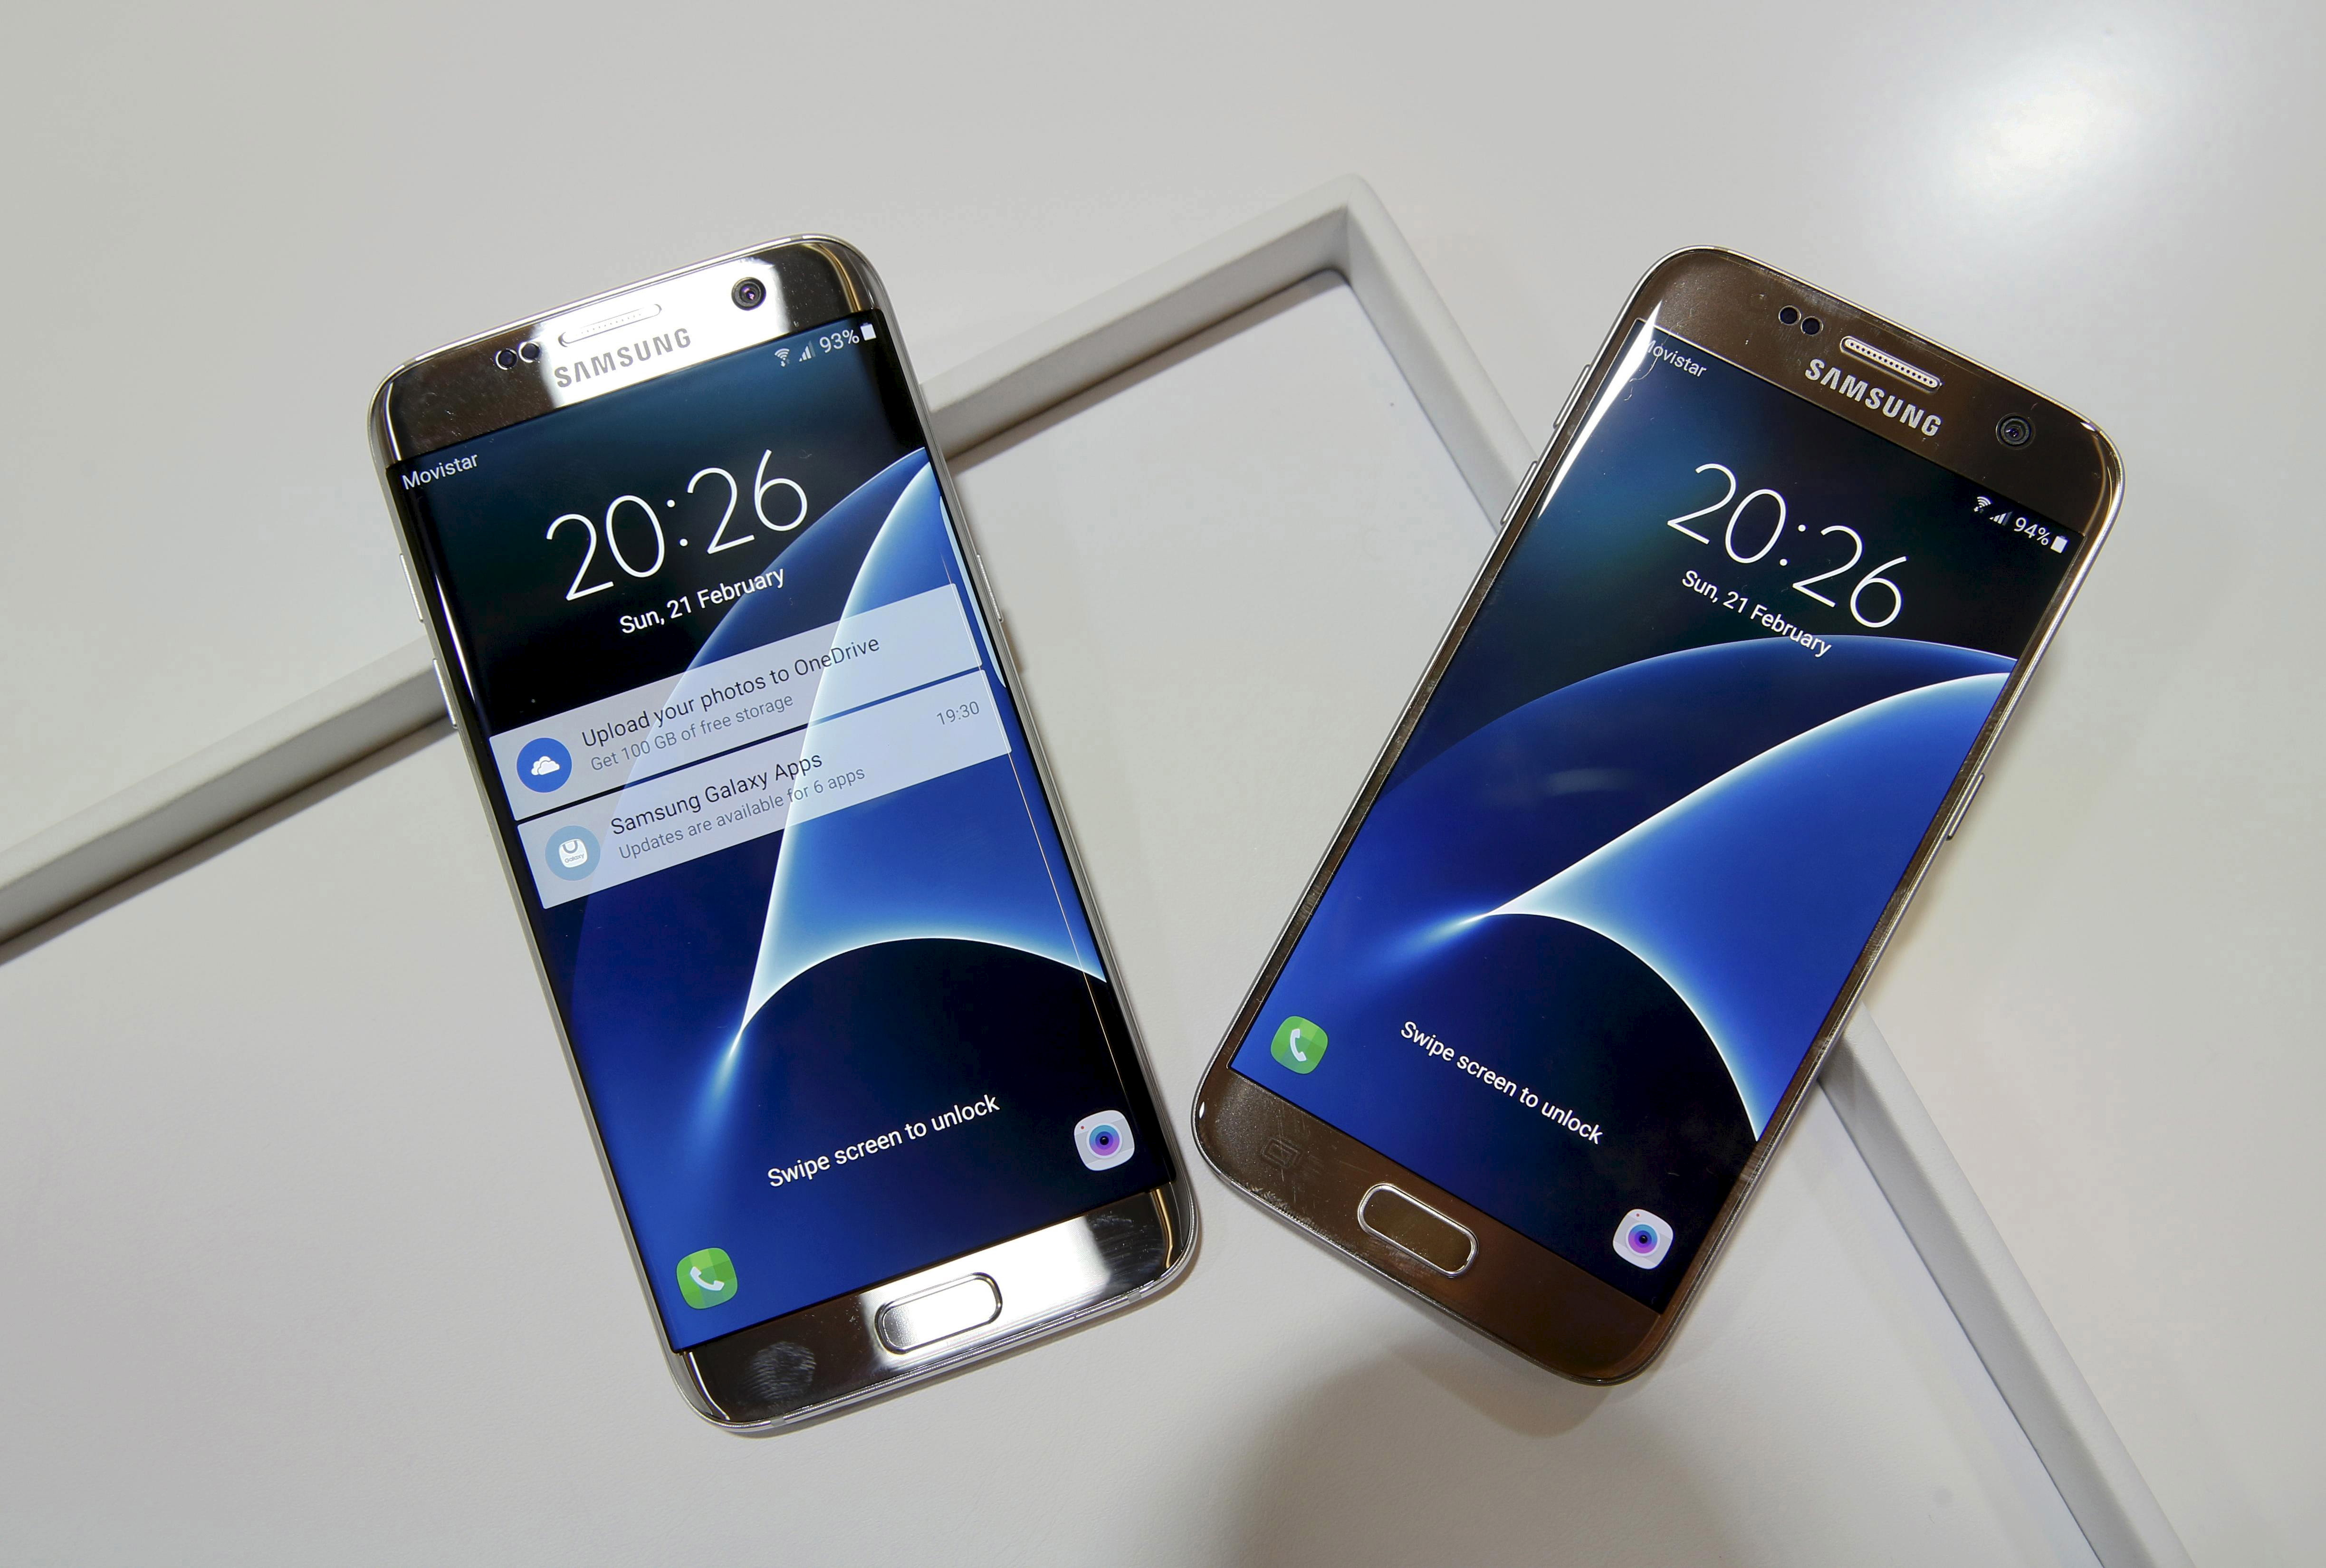 Android Nougat Samsung Galaxy S7 Download May Commence Jan. 17 Following Soak Test